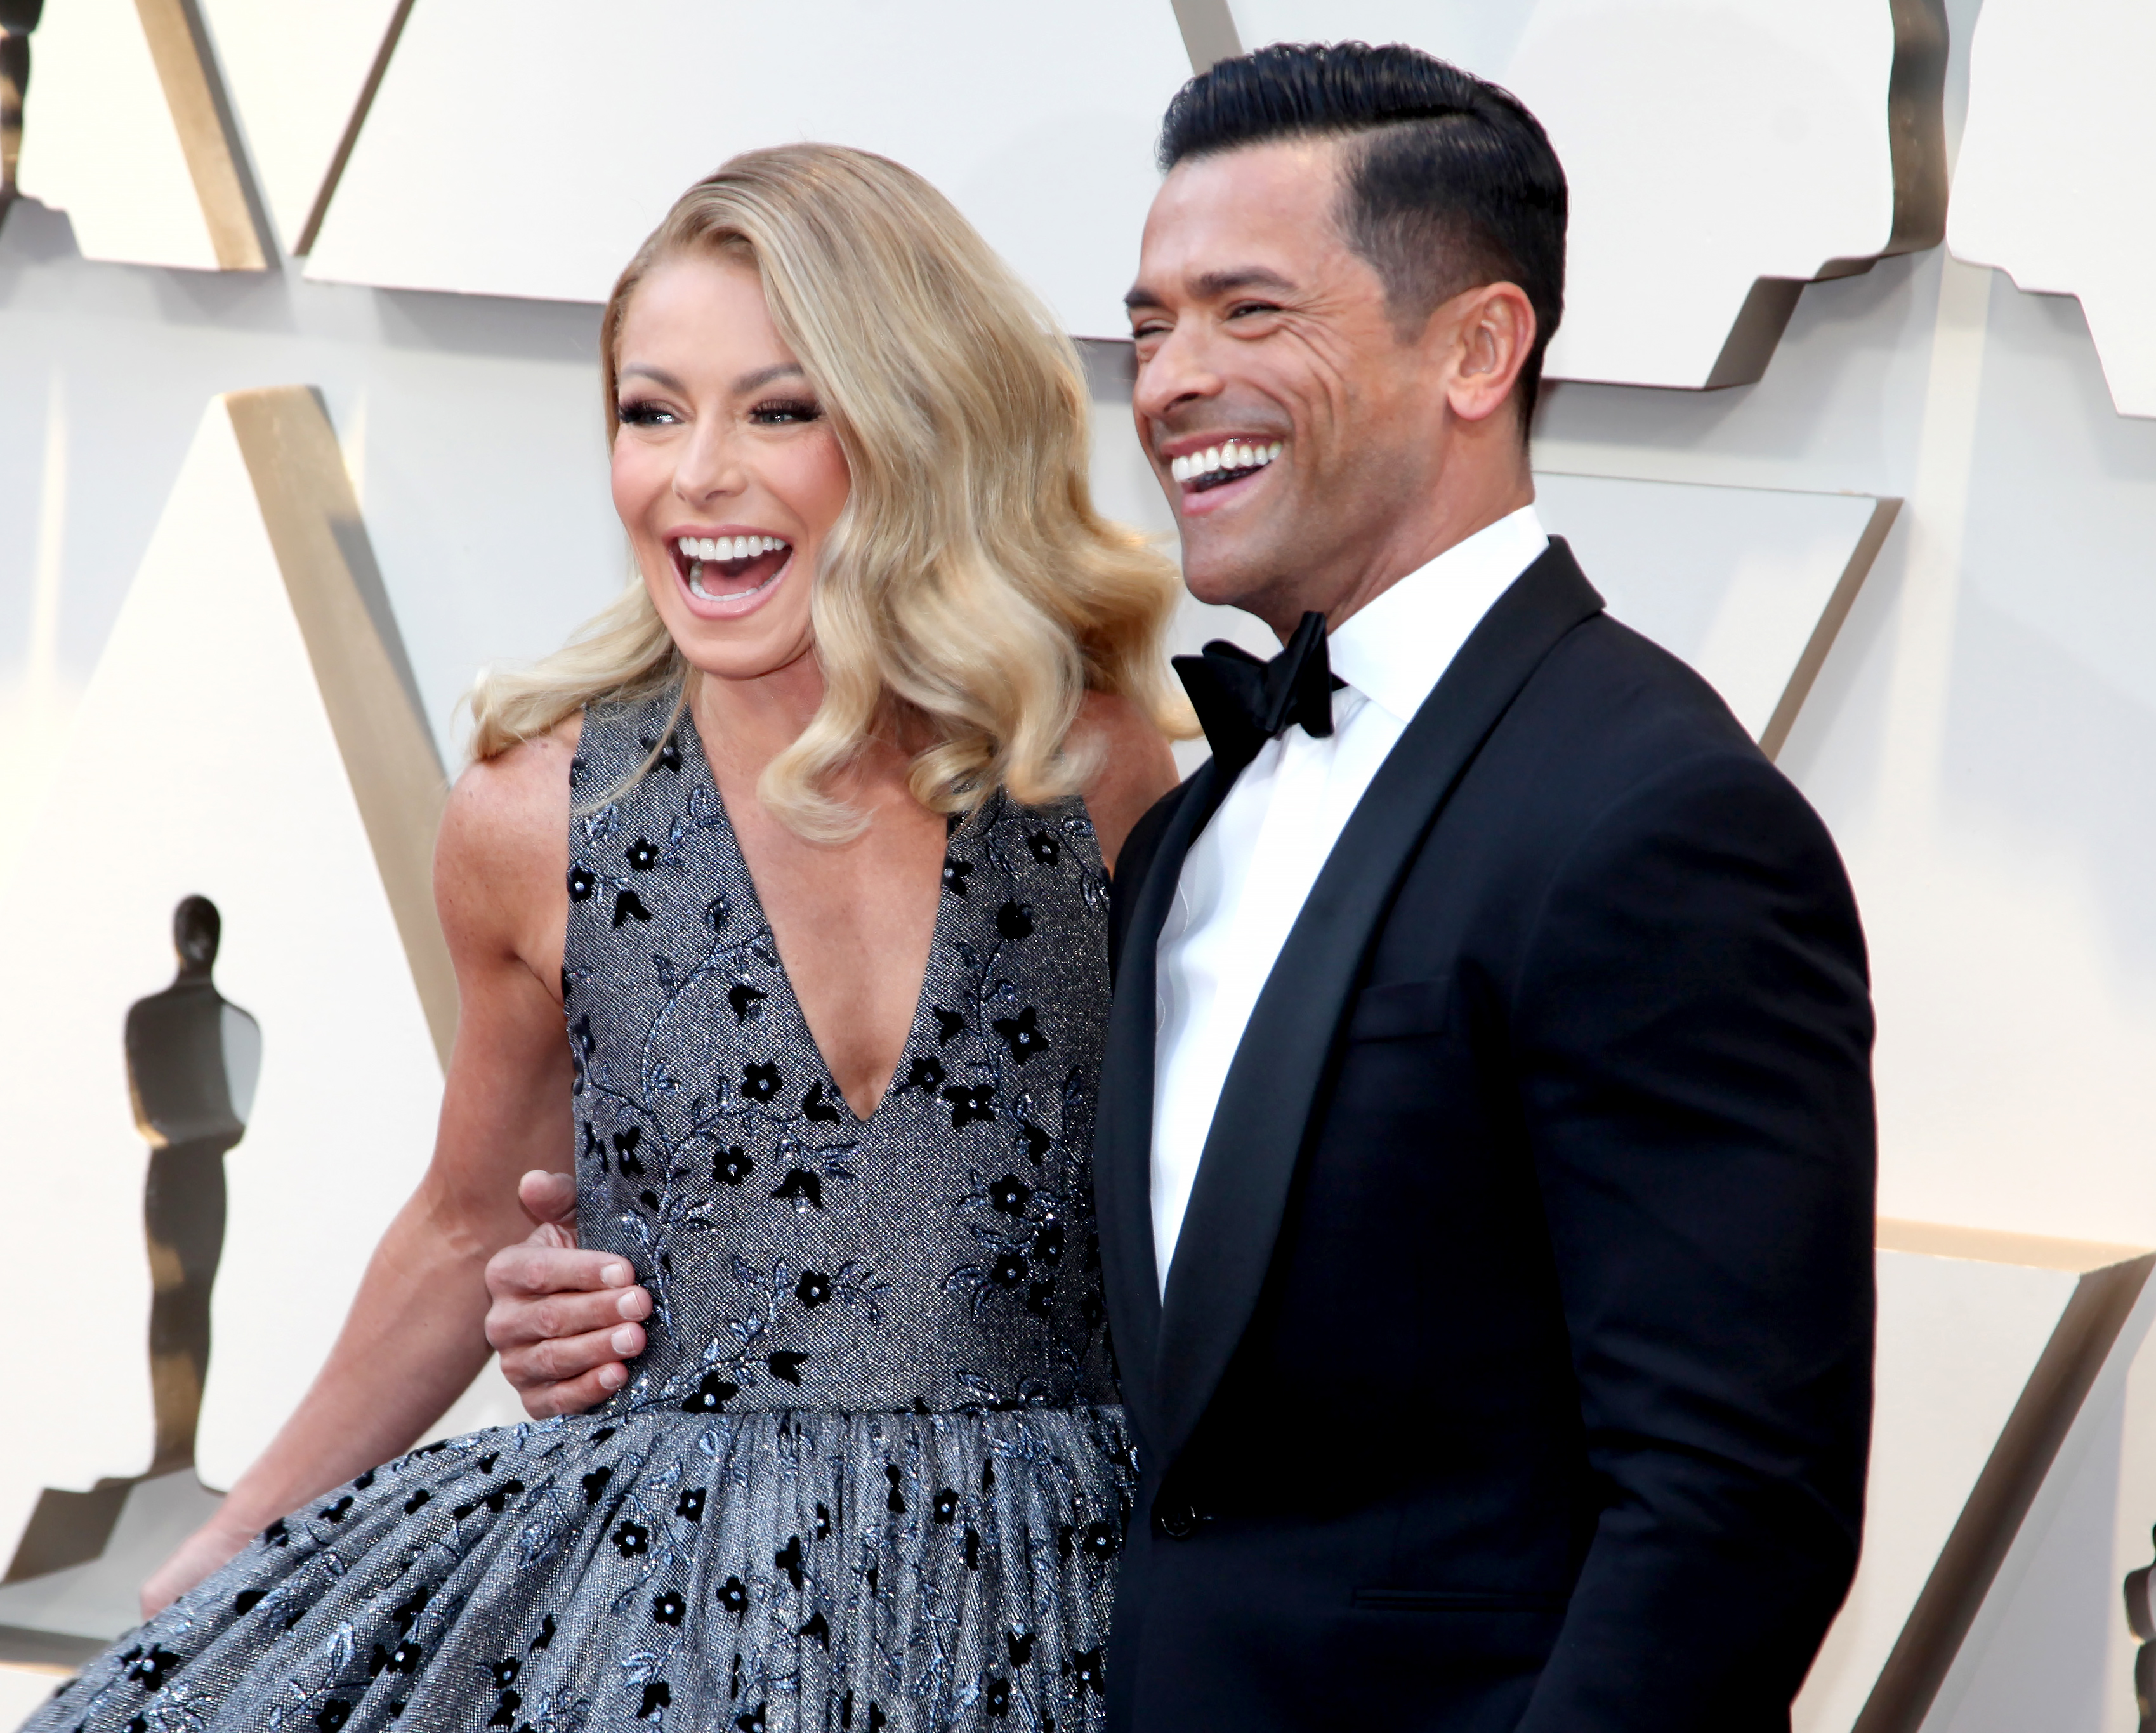 Kelly Ripa and Mark Consuelos Reveal the Secret to Their Healthy Sex Life